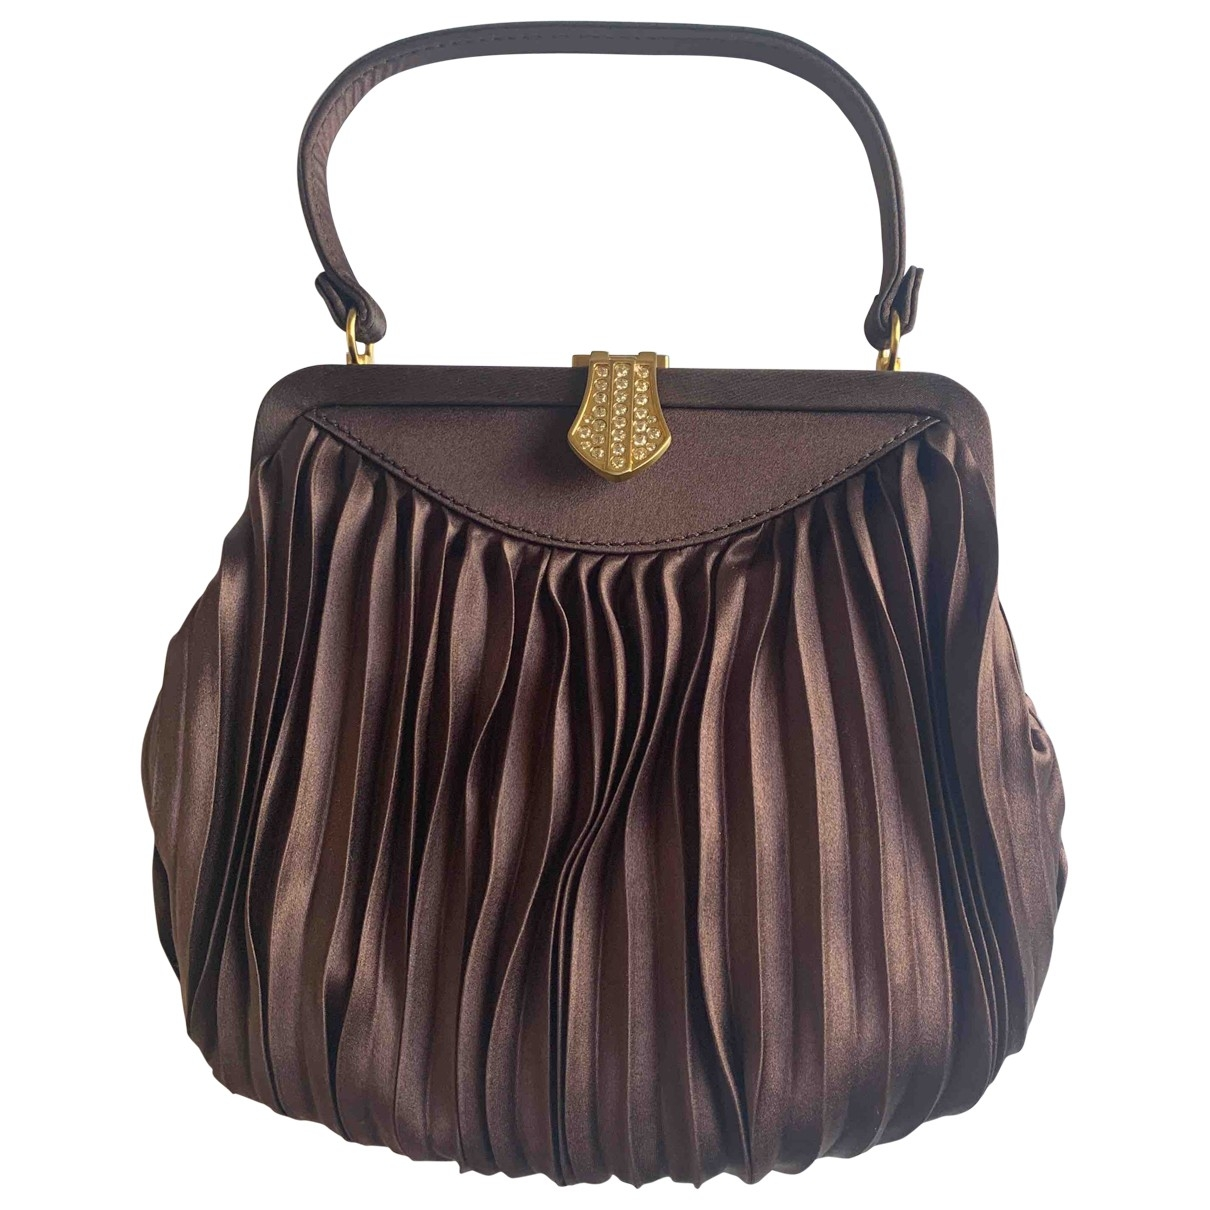 Chloé \N Brown Silk Clutch bag for Women \N